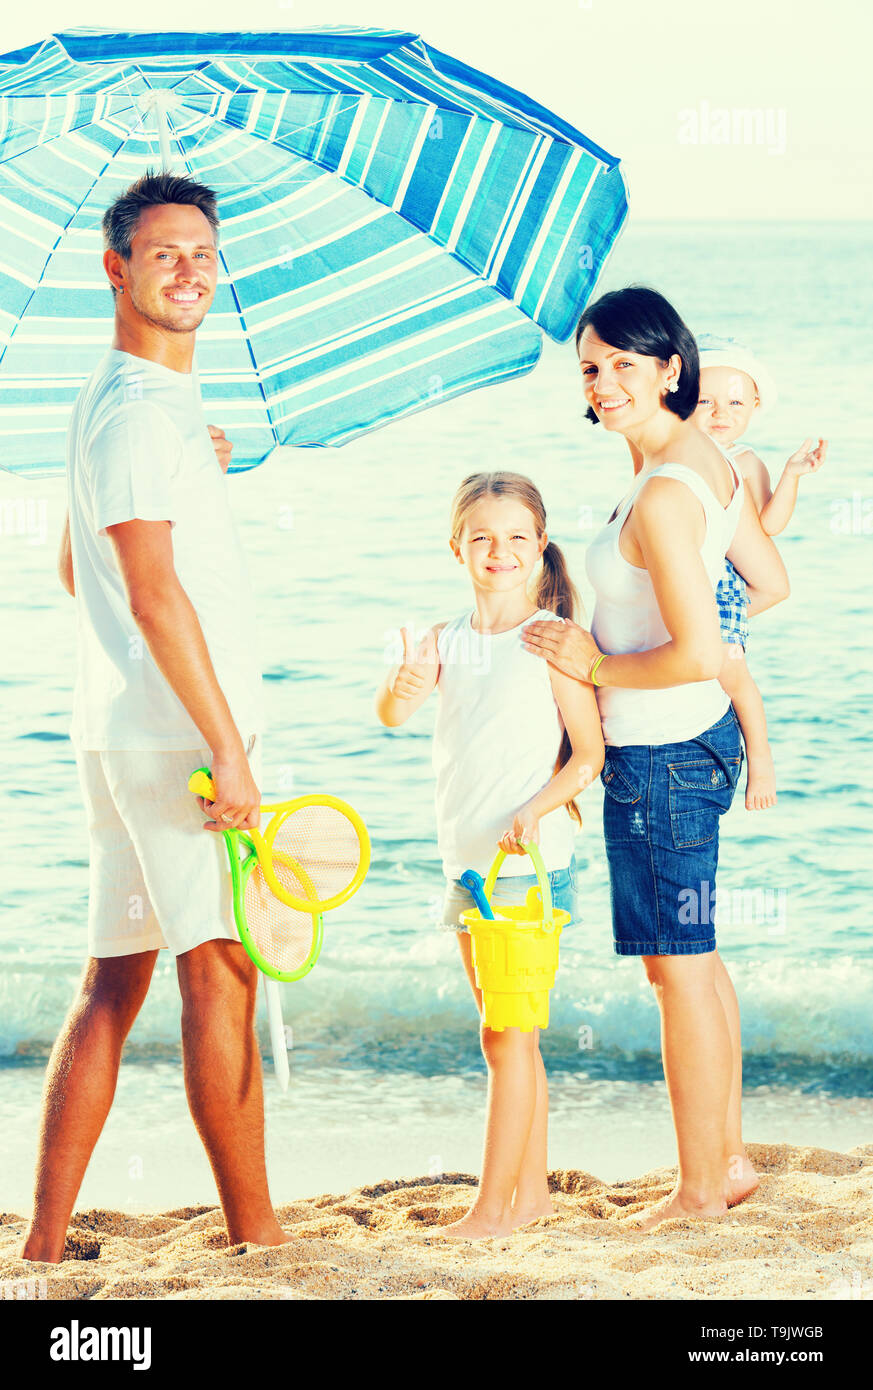 Happy spanish man and woman with two kids standing together under beach umbrella on beach - Stock Image